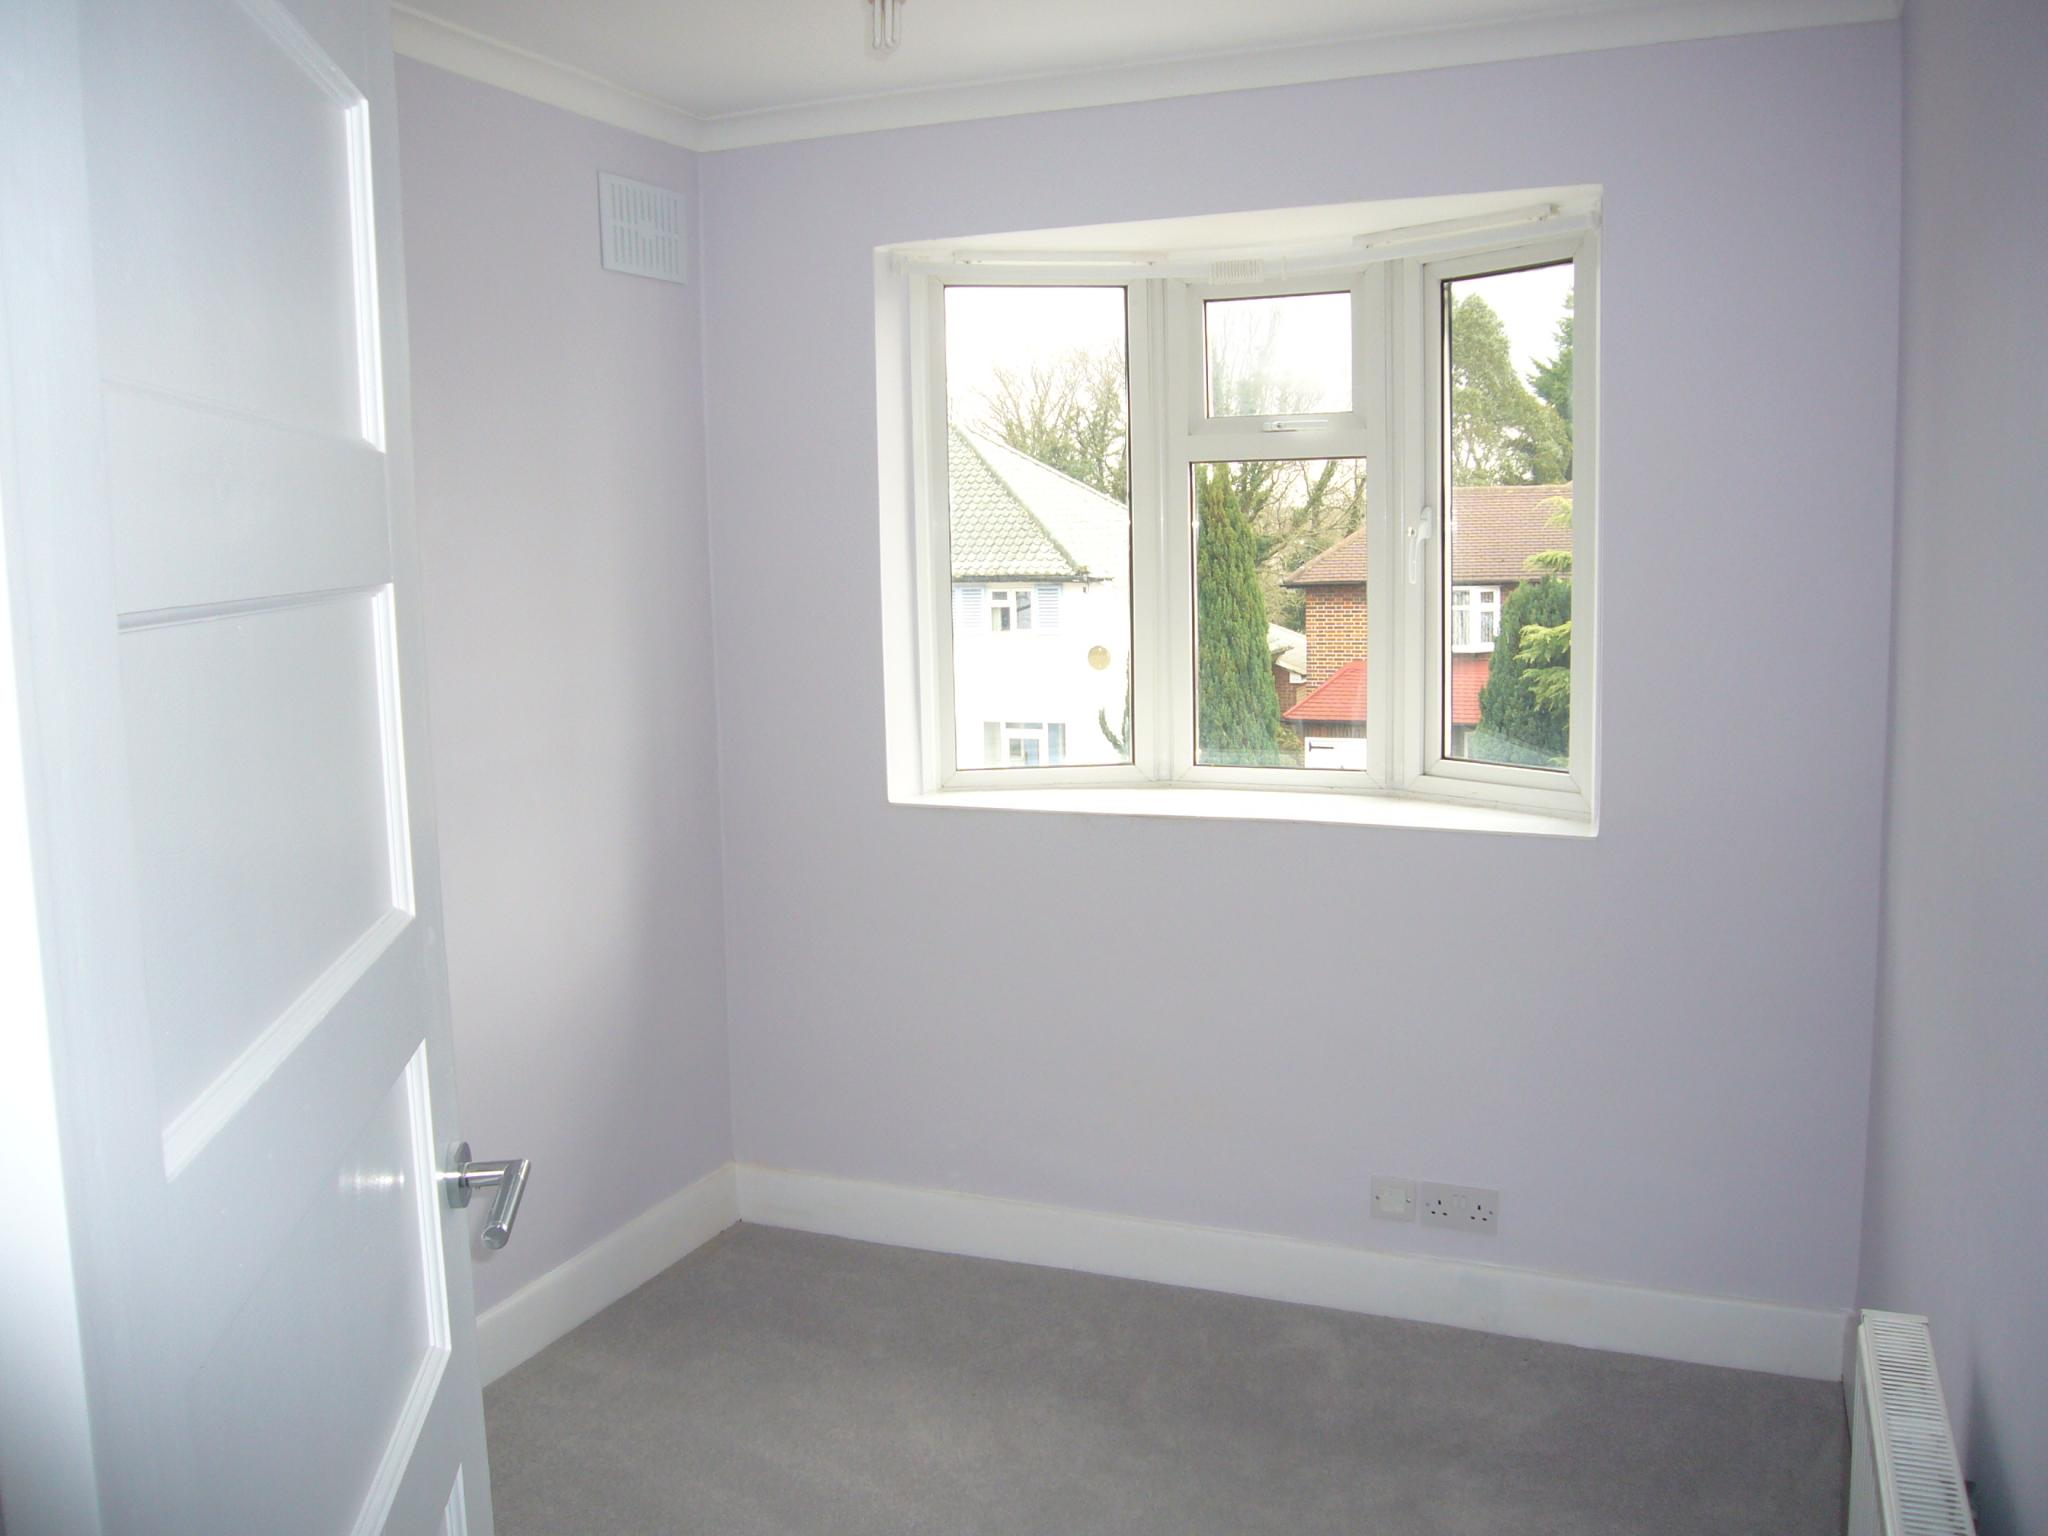 3 bedroom semi-detached house Let Agreed in Epsom - Photograph 11.